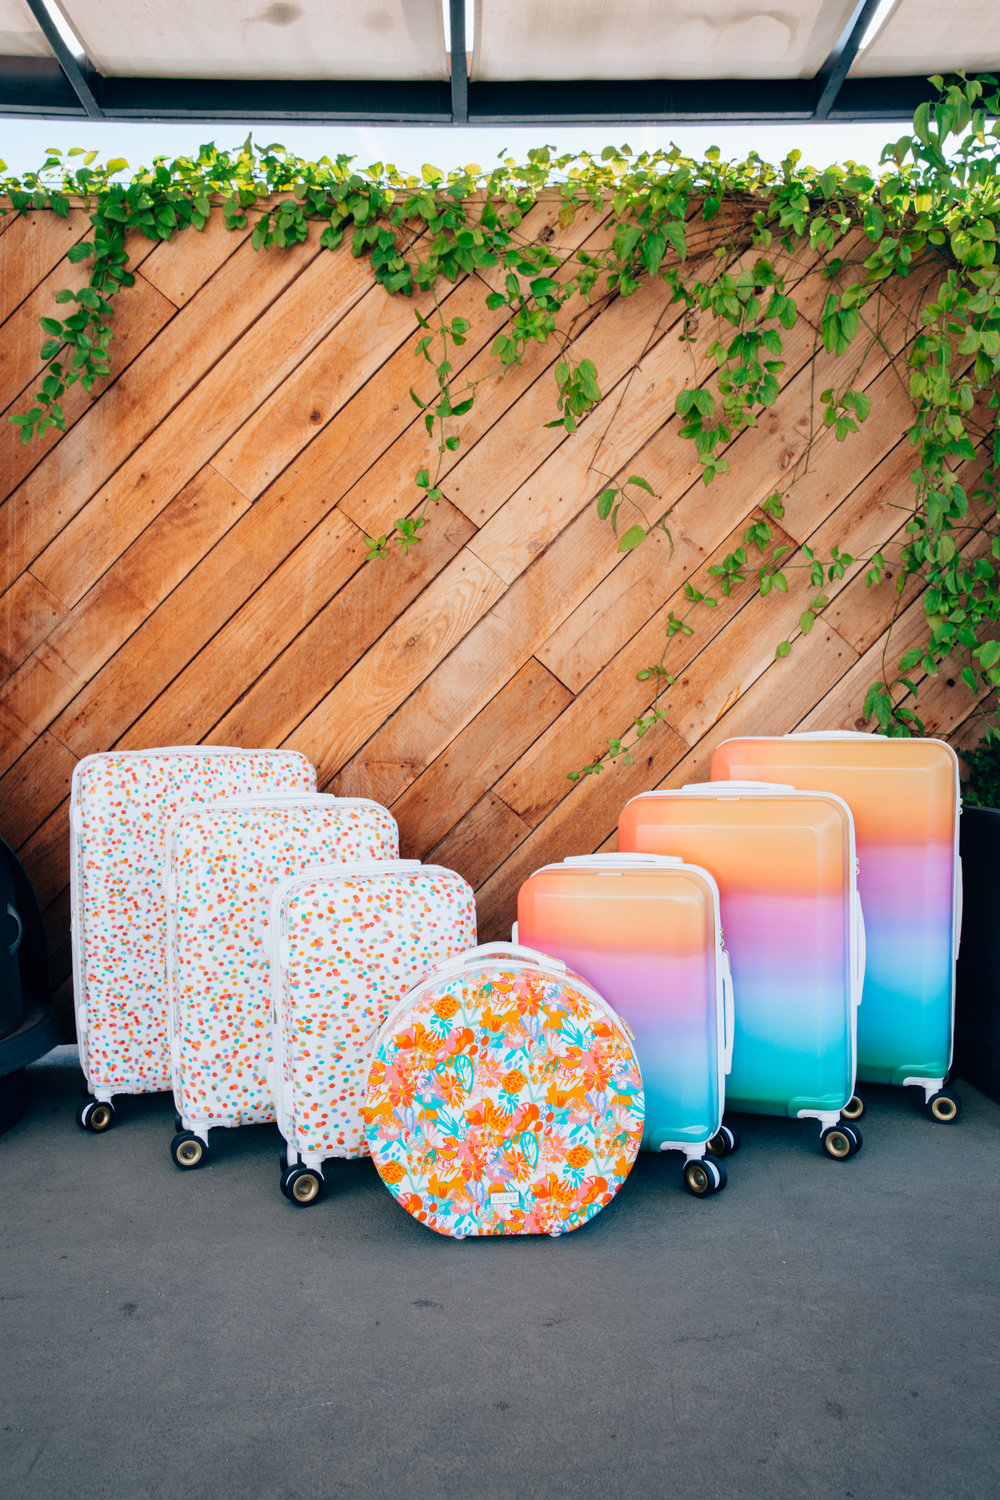 Check out this luggage lineup!